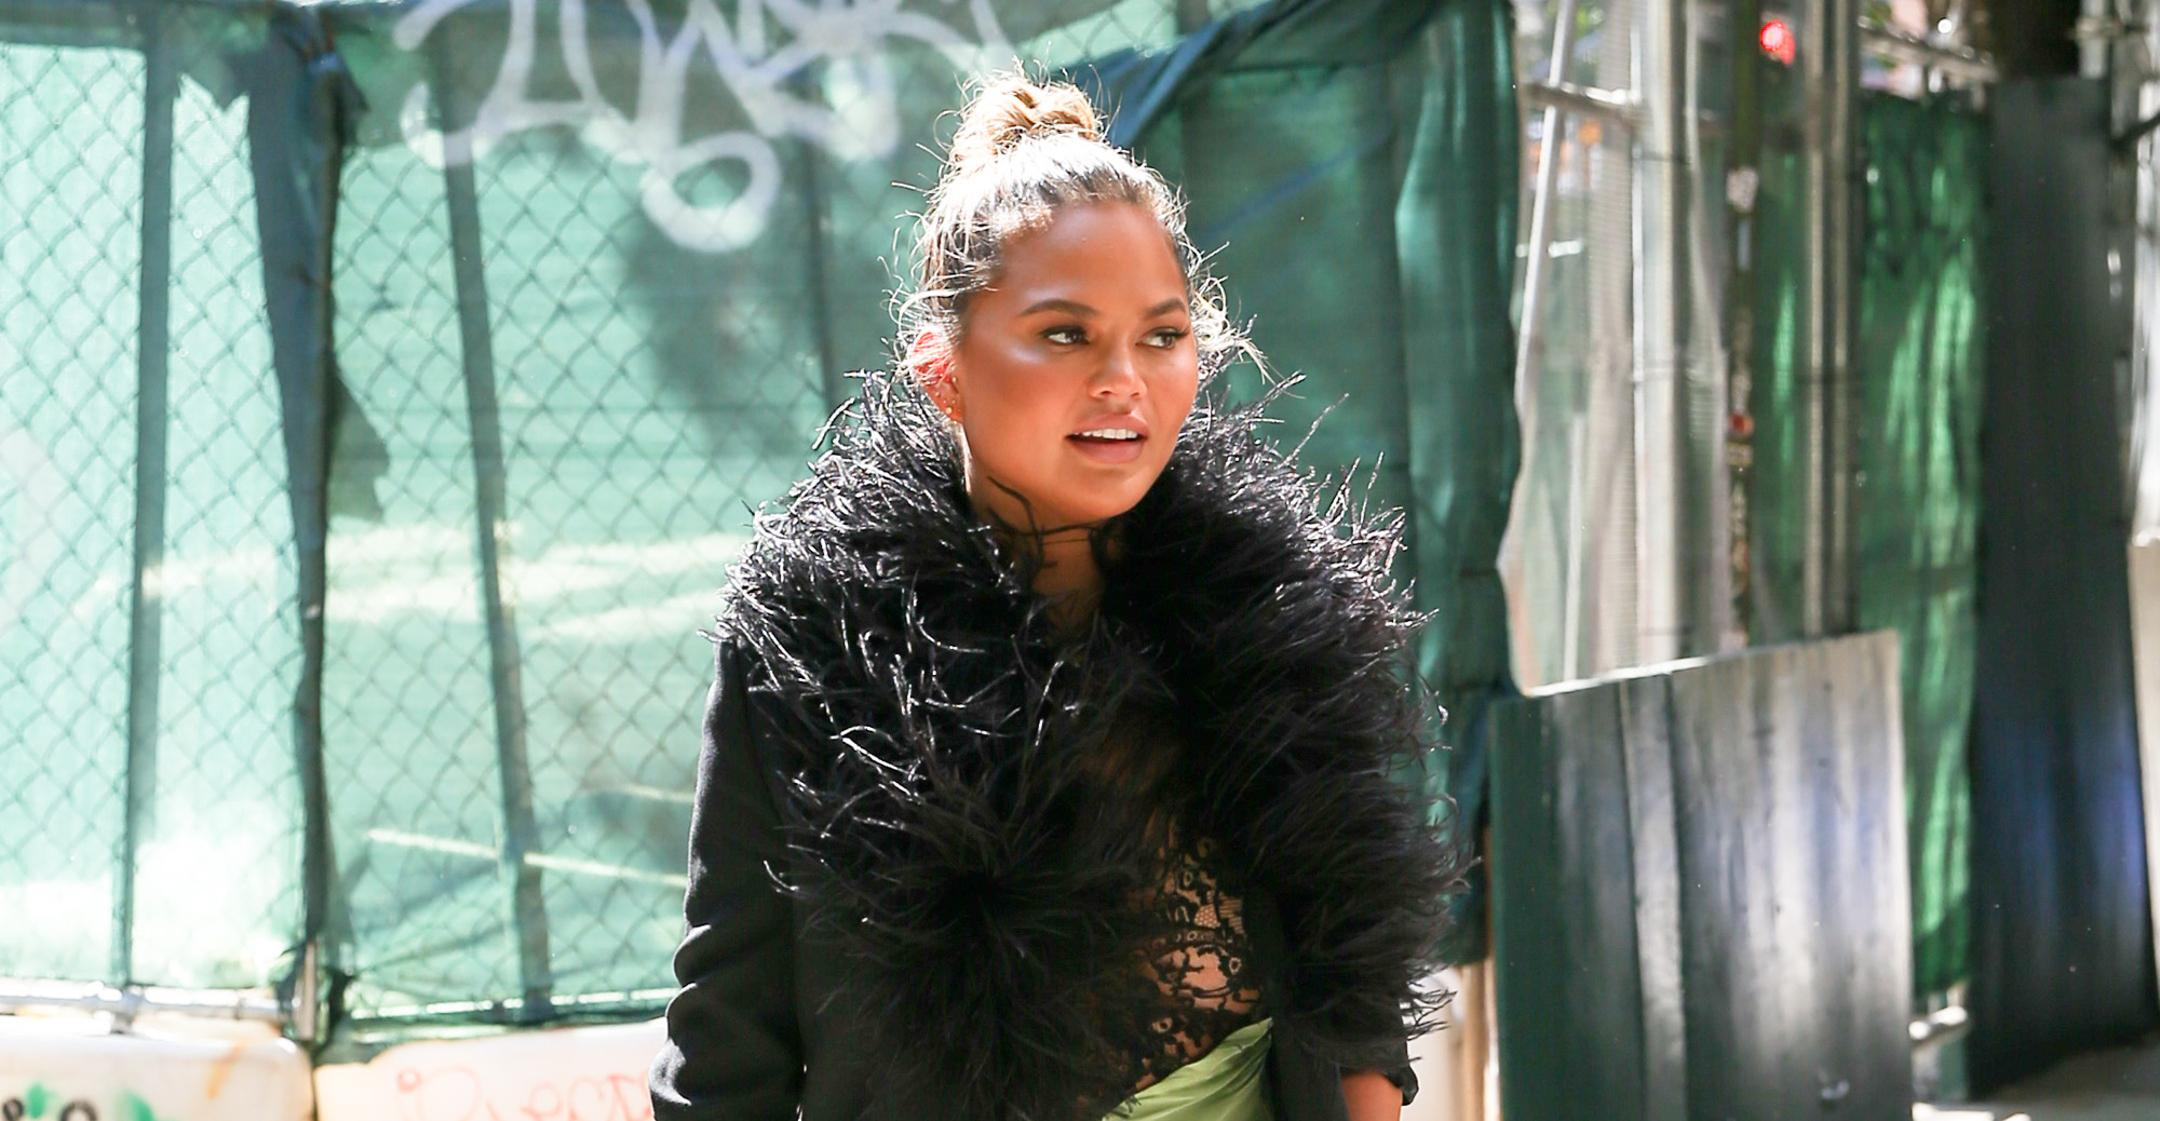 chrissy teigen gets fat removed from cheeks shows slimmer face i like it